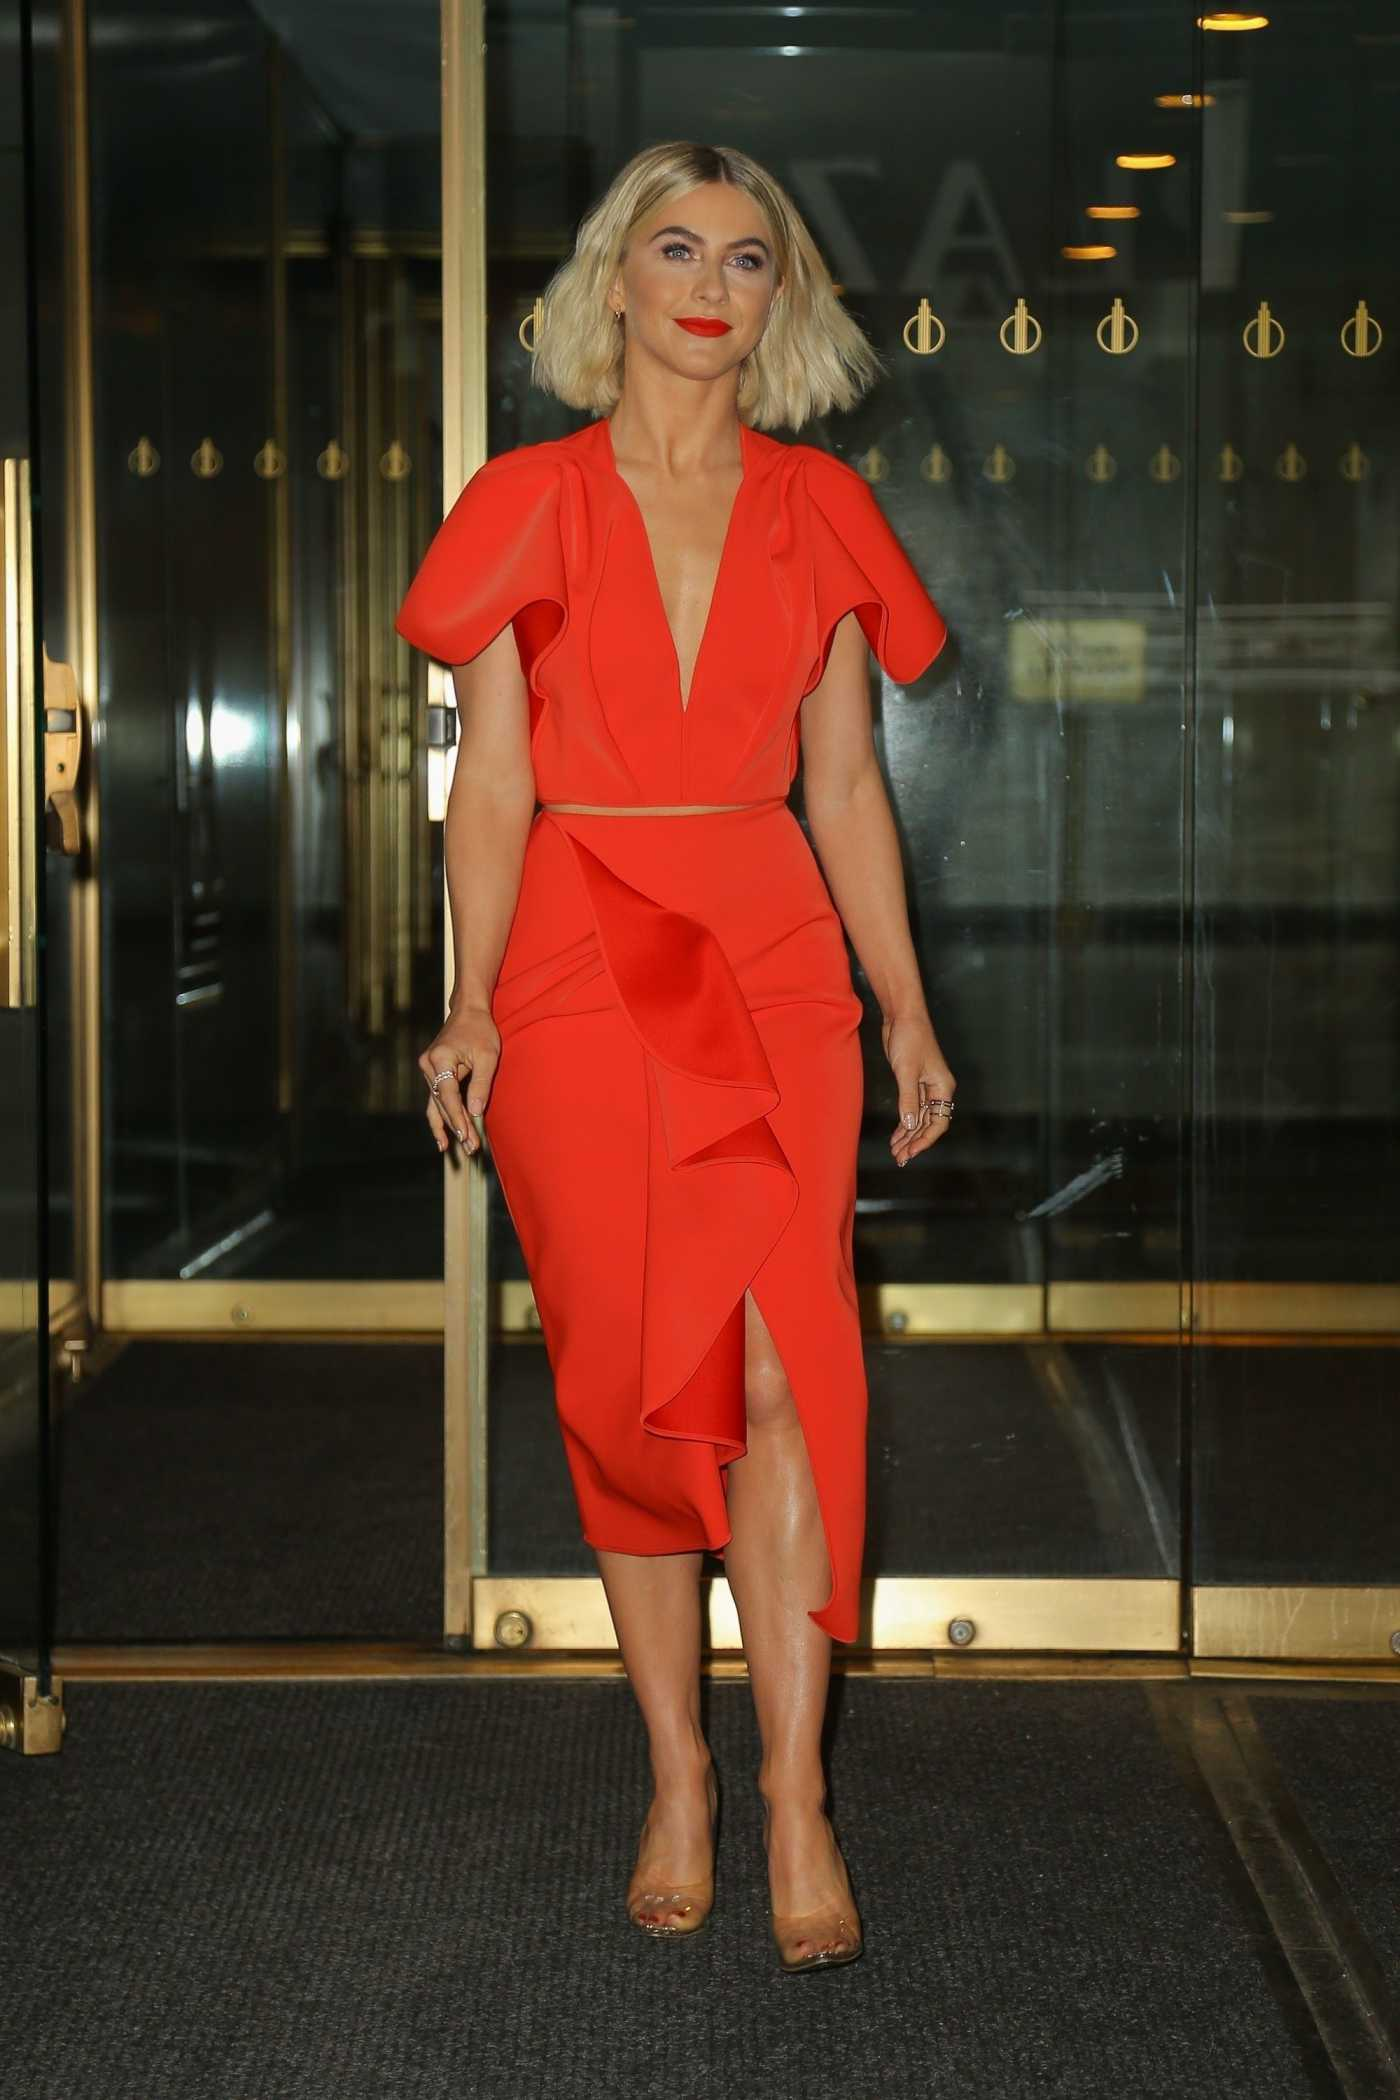 Julianne Hough in a Red Dress Was Seen Out in NYC 05/13/2019